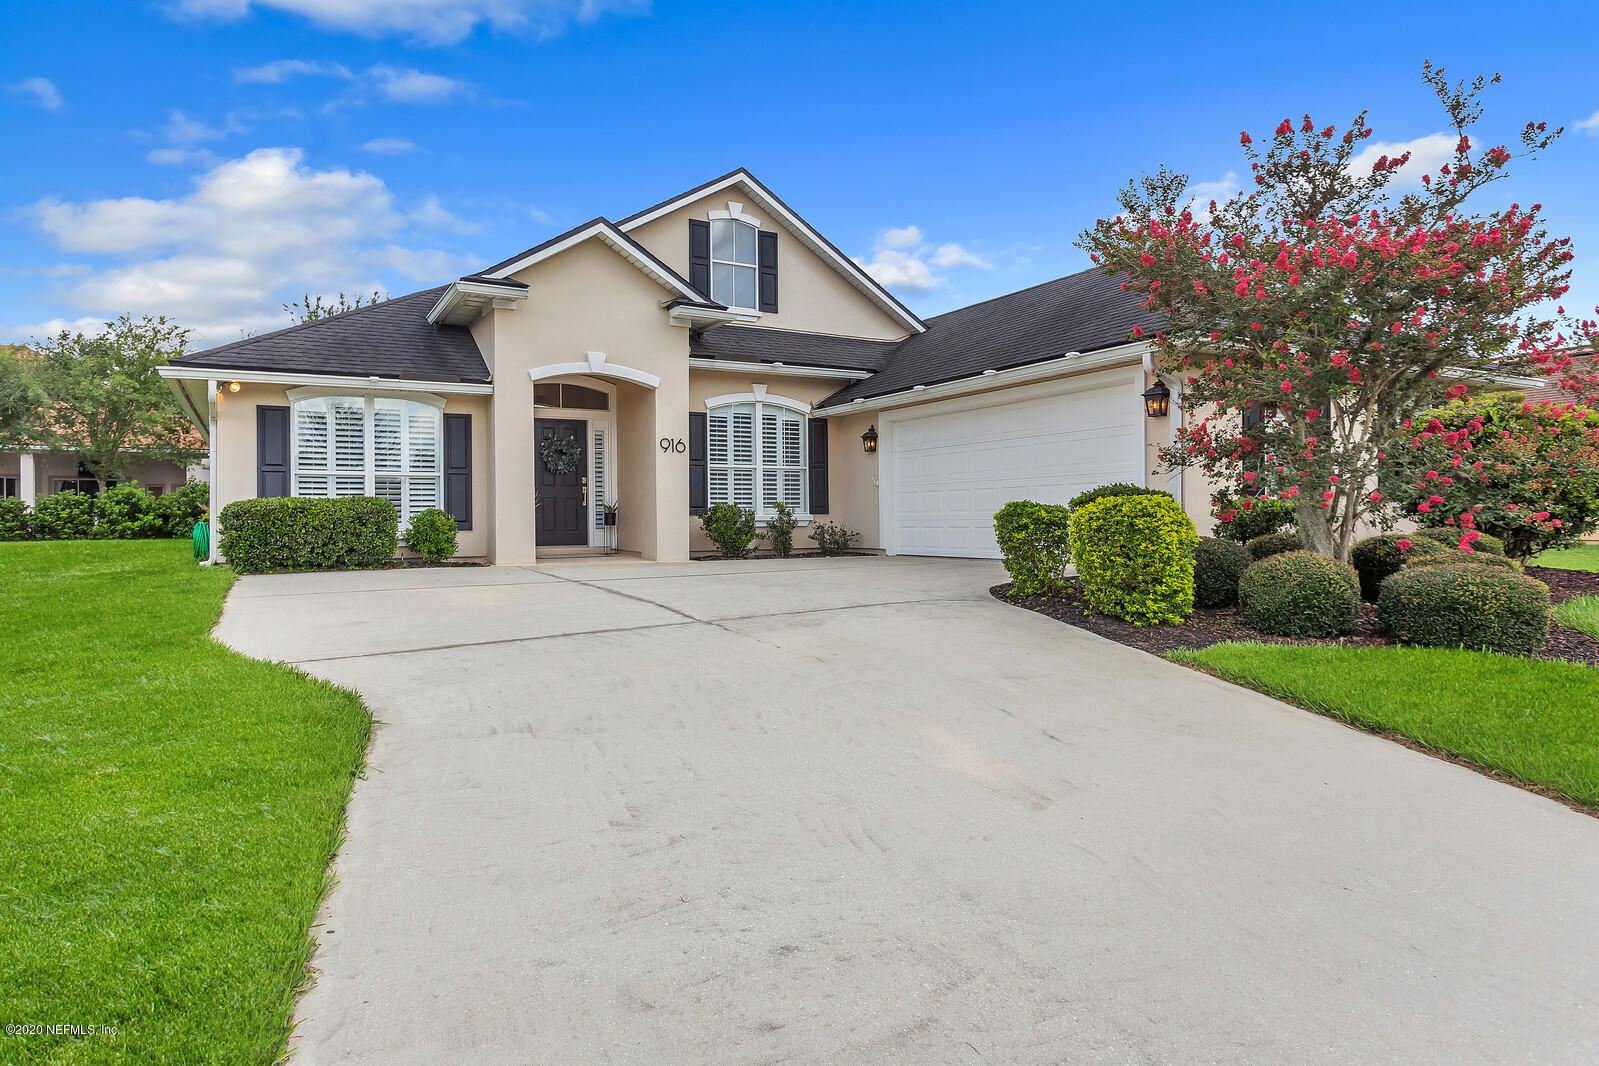 916 ATHLONE, ST AUGUSTINE, FLORIDA 32095, 3 Bedrooms Bedrooms, ,2 BathroomsBathrooms,Residential,For sale,ATHLONE,1062167